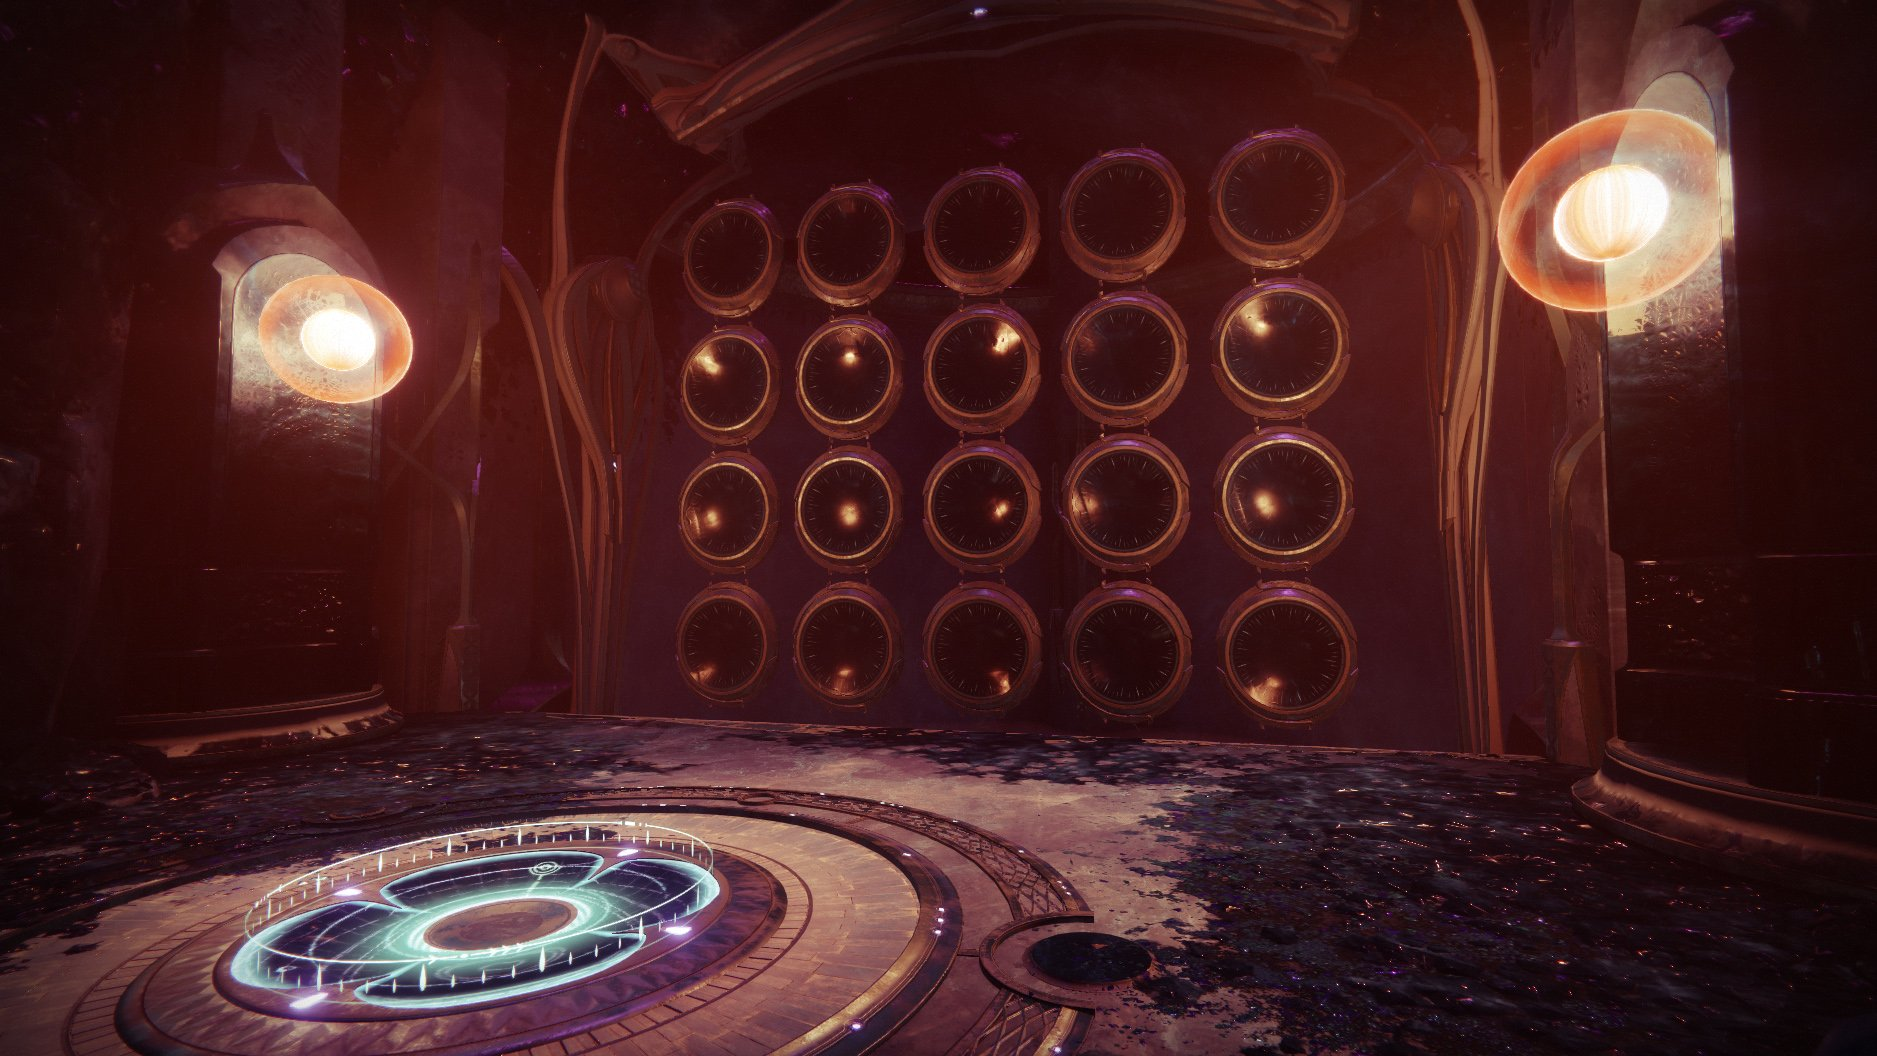 All Wishes For The Wall Of Wishes In The Last Wish Raid In Destiny 2 Shacknews